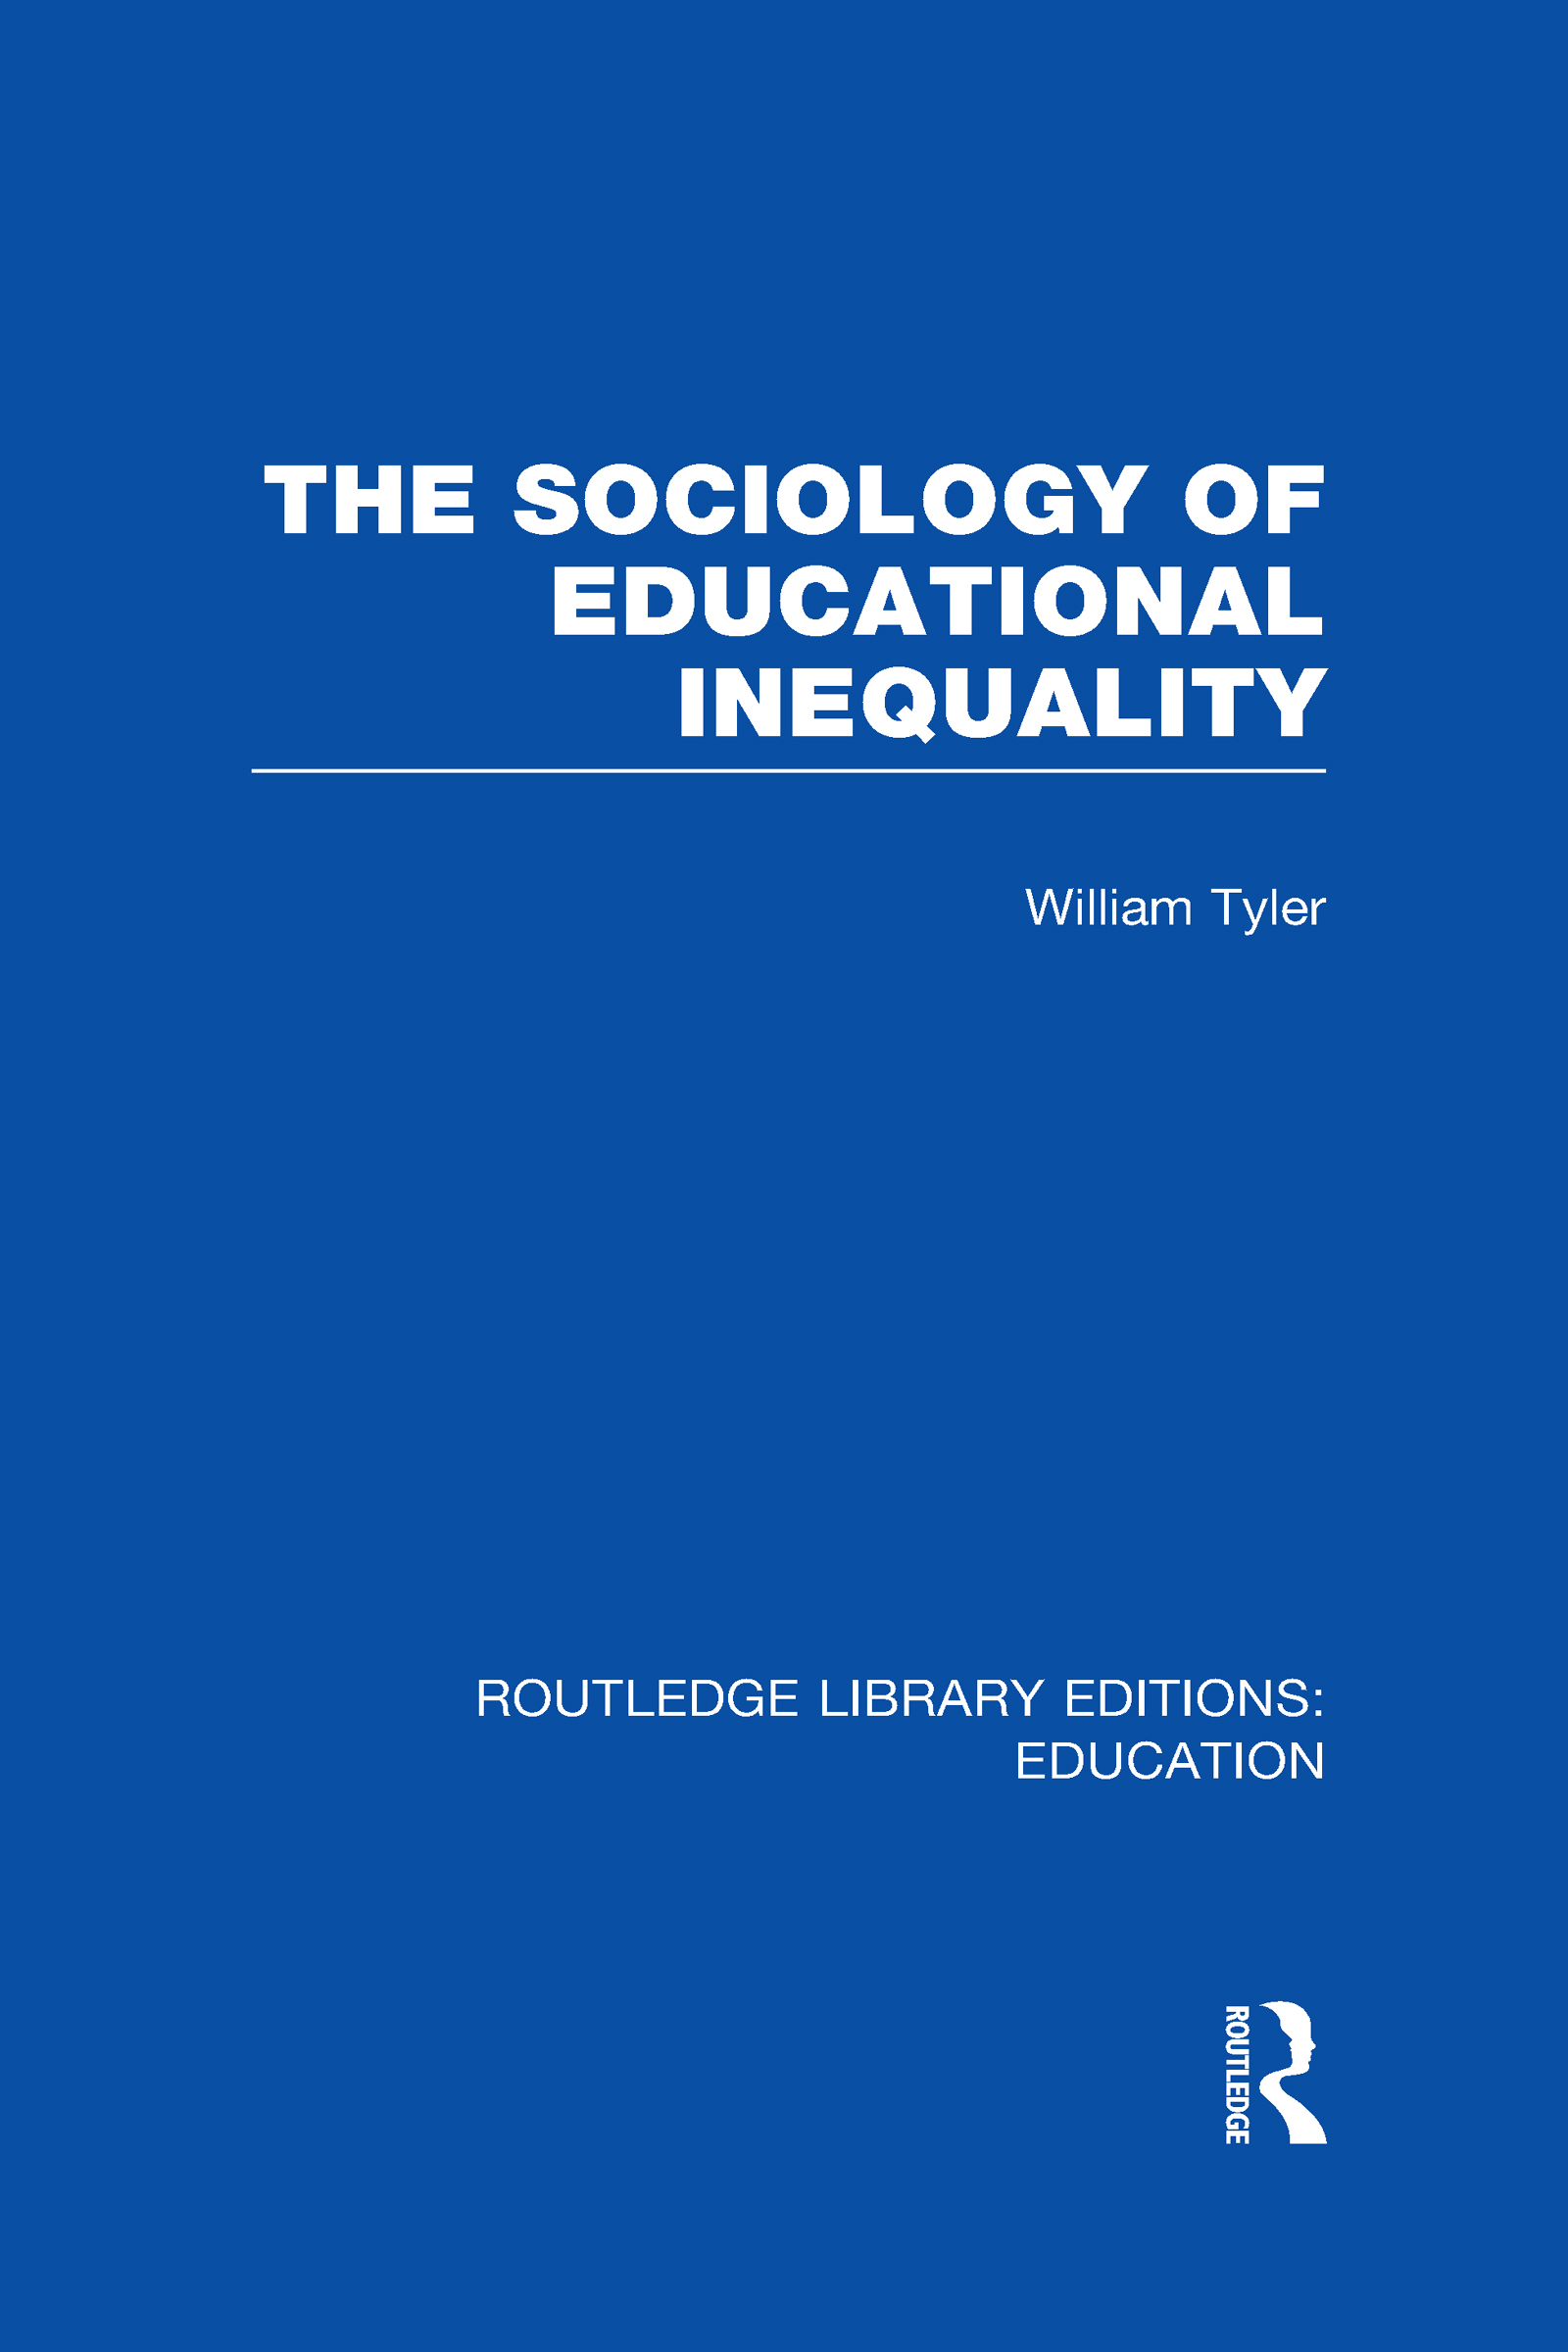 The Sociology of Educational Inequality (RLE Edu L) (Hardback) book cover